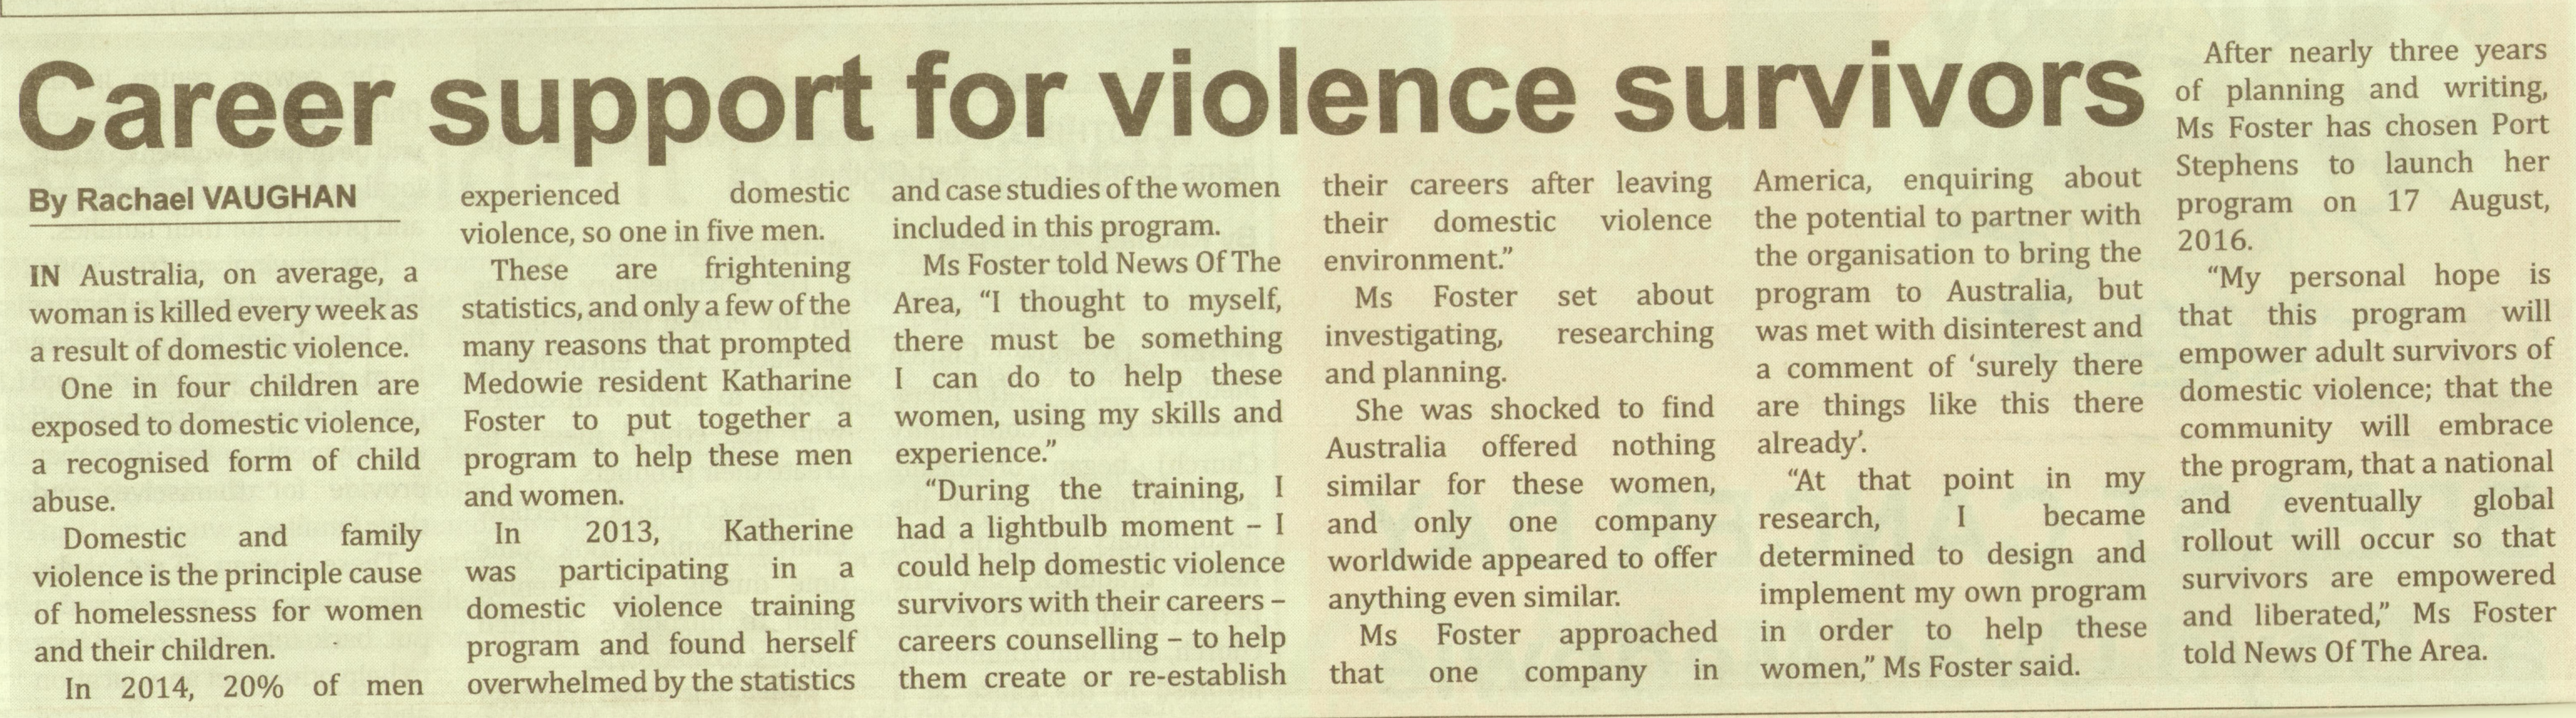 Career Counselling For Dv Survivors Editorial Published By News Of